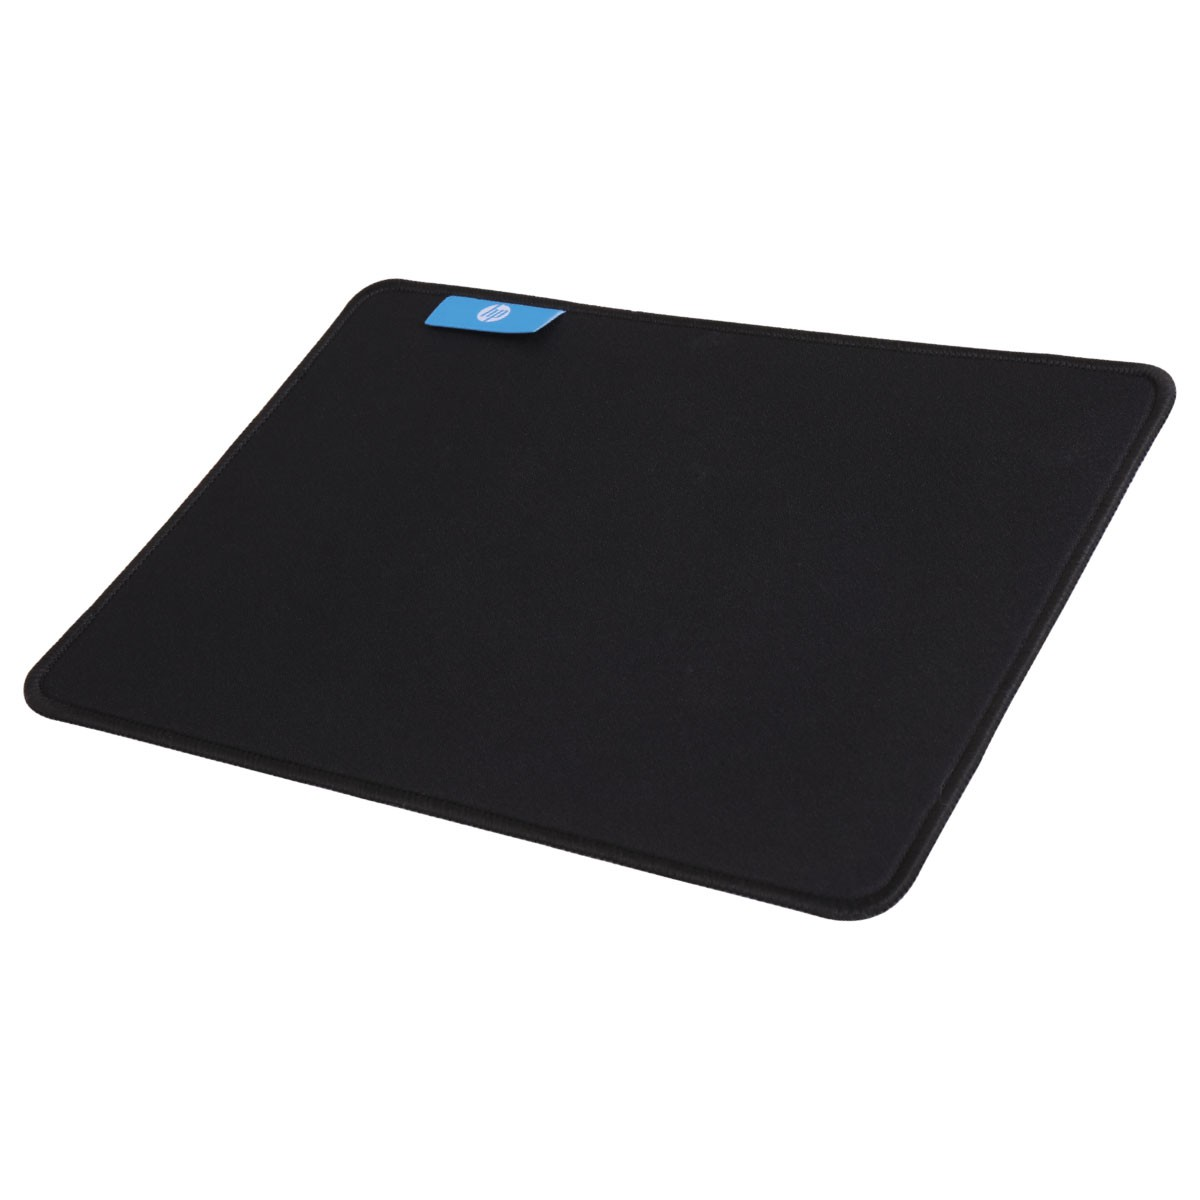 Mouse PAD HP - MP3524 BLACK - Pequeno (350*240*4MM)